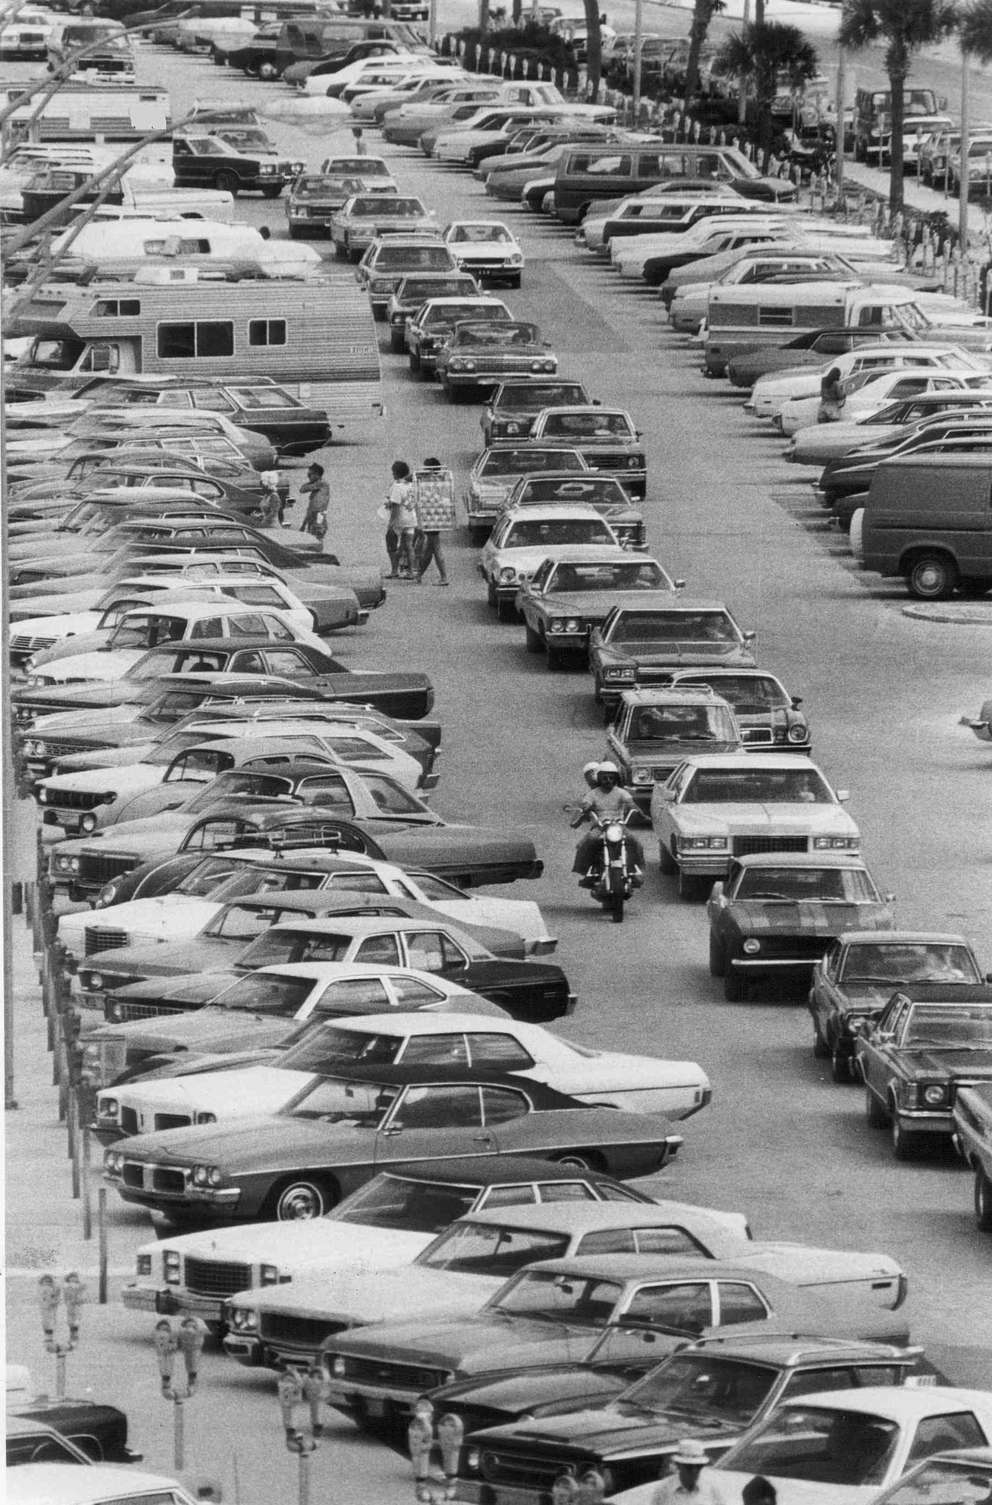 Warm temperatures and sunny skies drew big Easter Morning crowds to Clearwater Beach. The public beach parking lot just south of Pier 60 was reported filled to capacity by 11:30 a.m on the day this photo was taken. Times (1977)